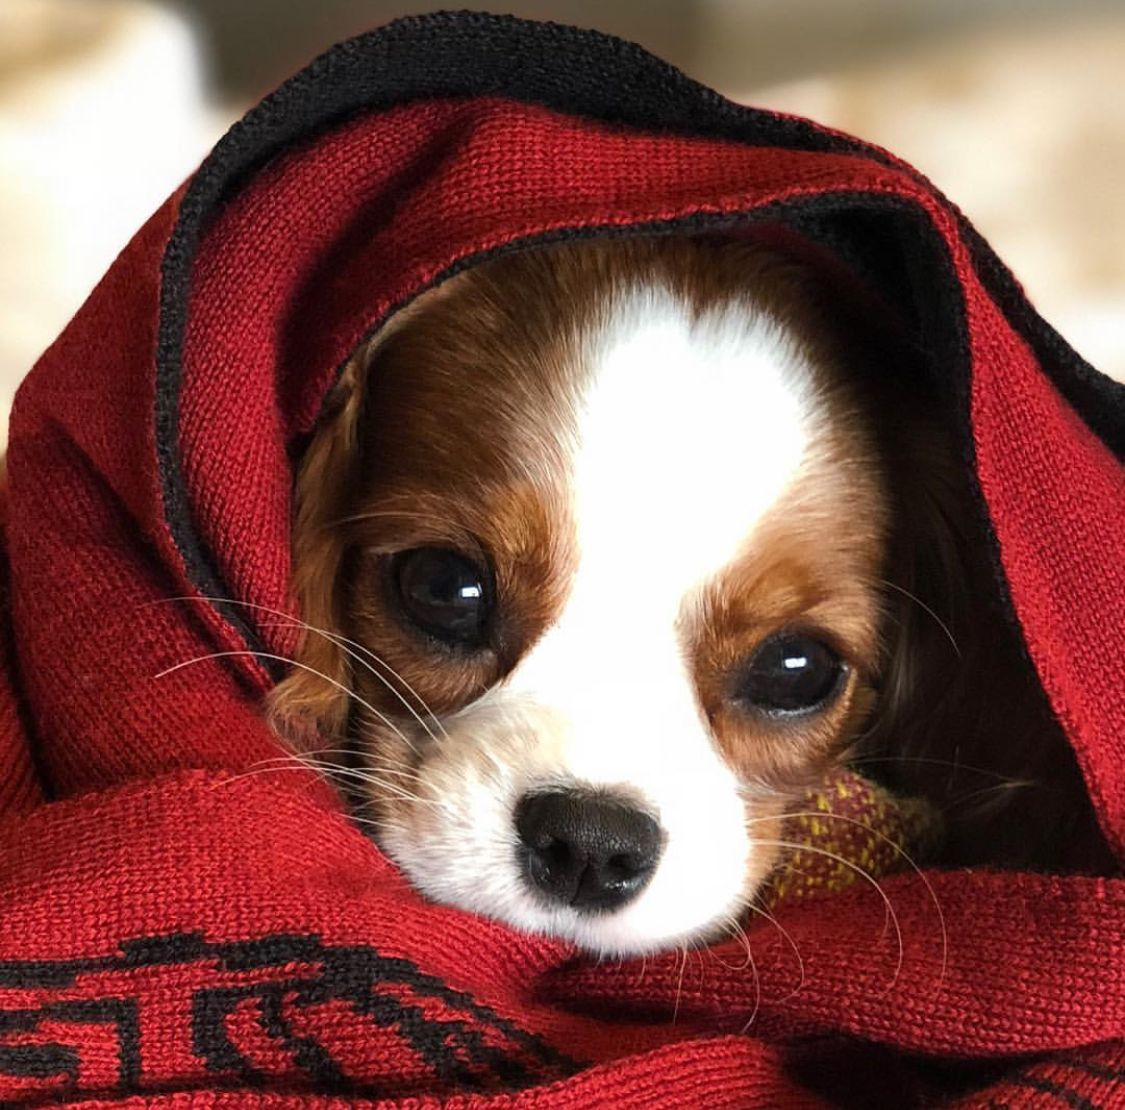 Pin by damien komala on cavaliers pinterest dogs animals and